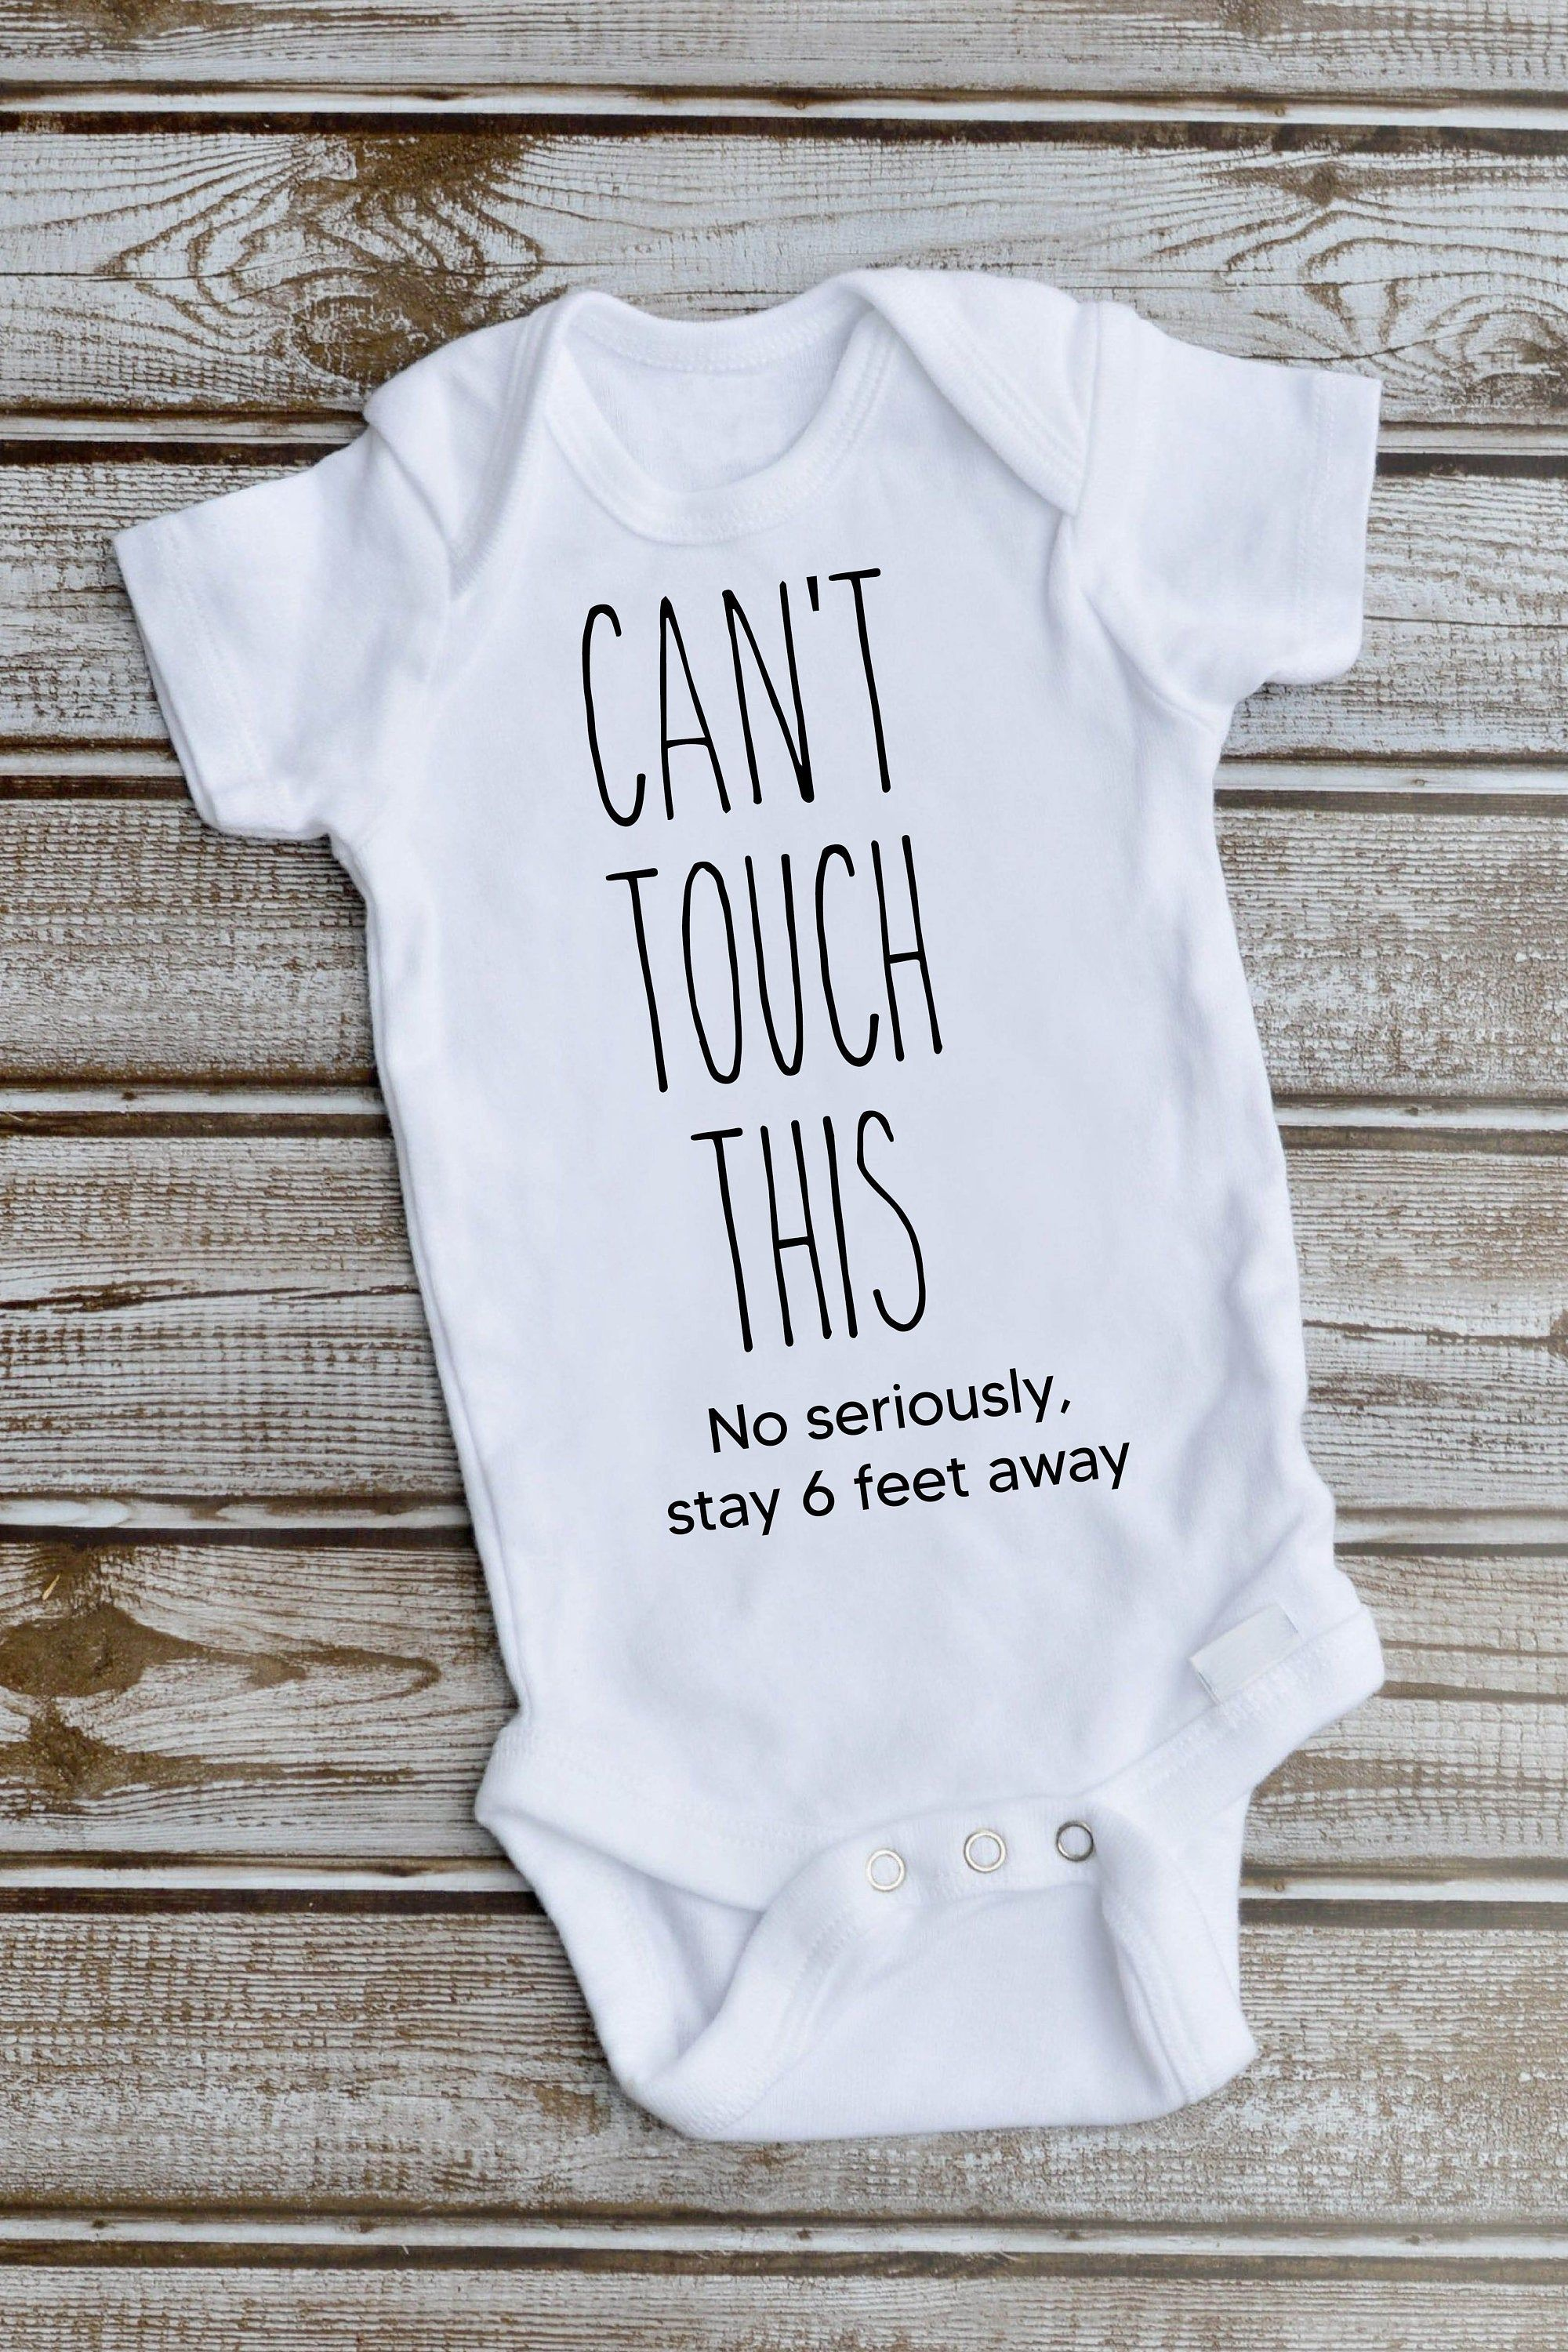 Funny Baby Baby All In Ones Custom Baby Baby Clothing Rompers